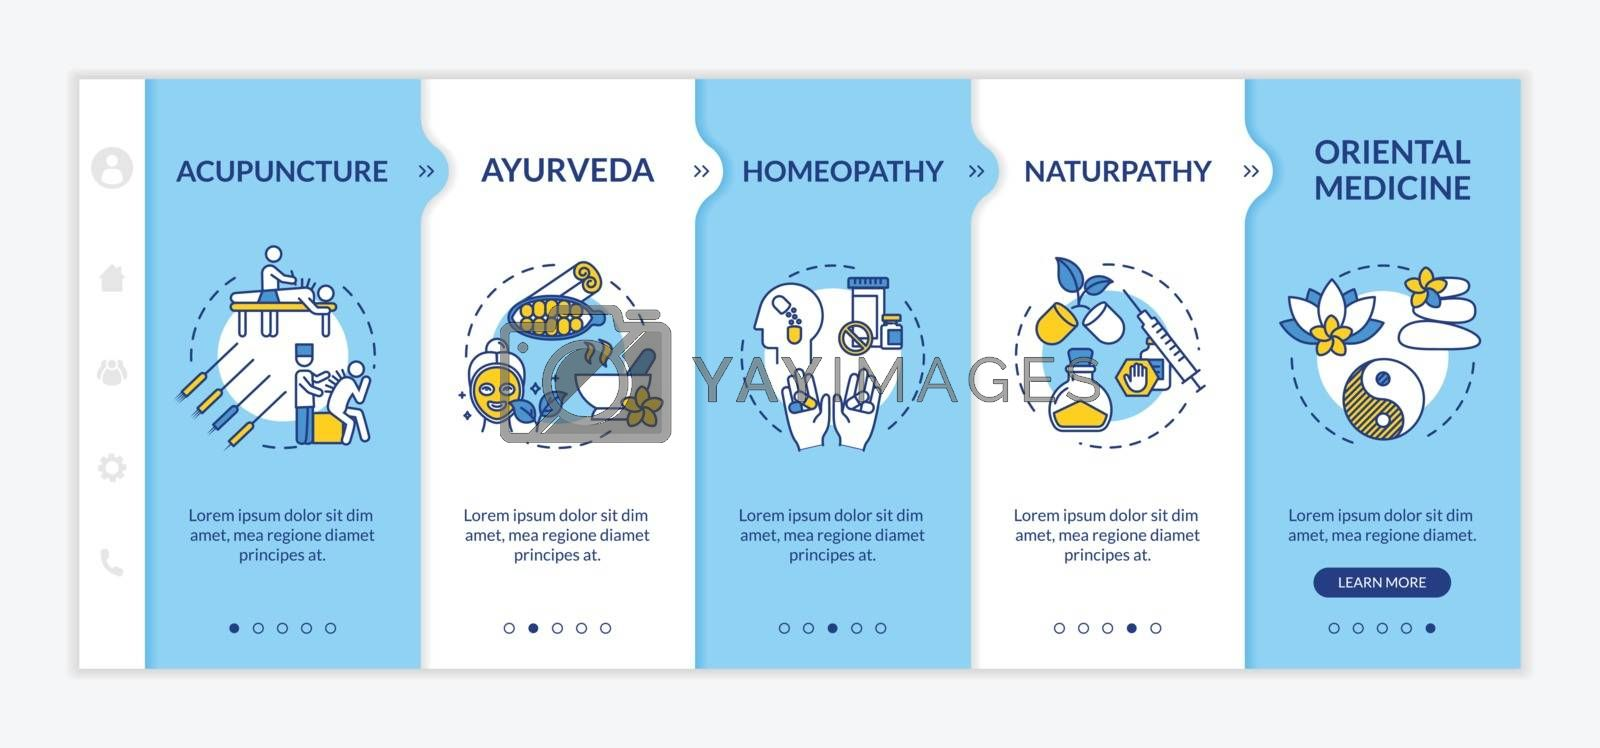 Alternative medicine onboarding vector template. Responsive mobile website with icons. Acupuncture, ayurveda, homeopathy and naturopathy webpage walkthrough step screens. RGB color concept